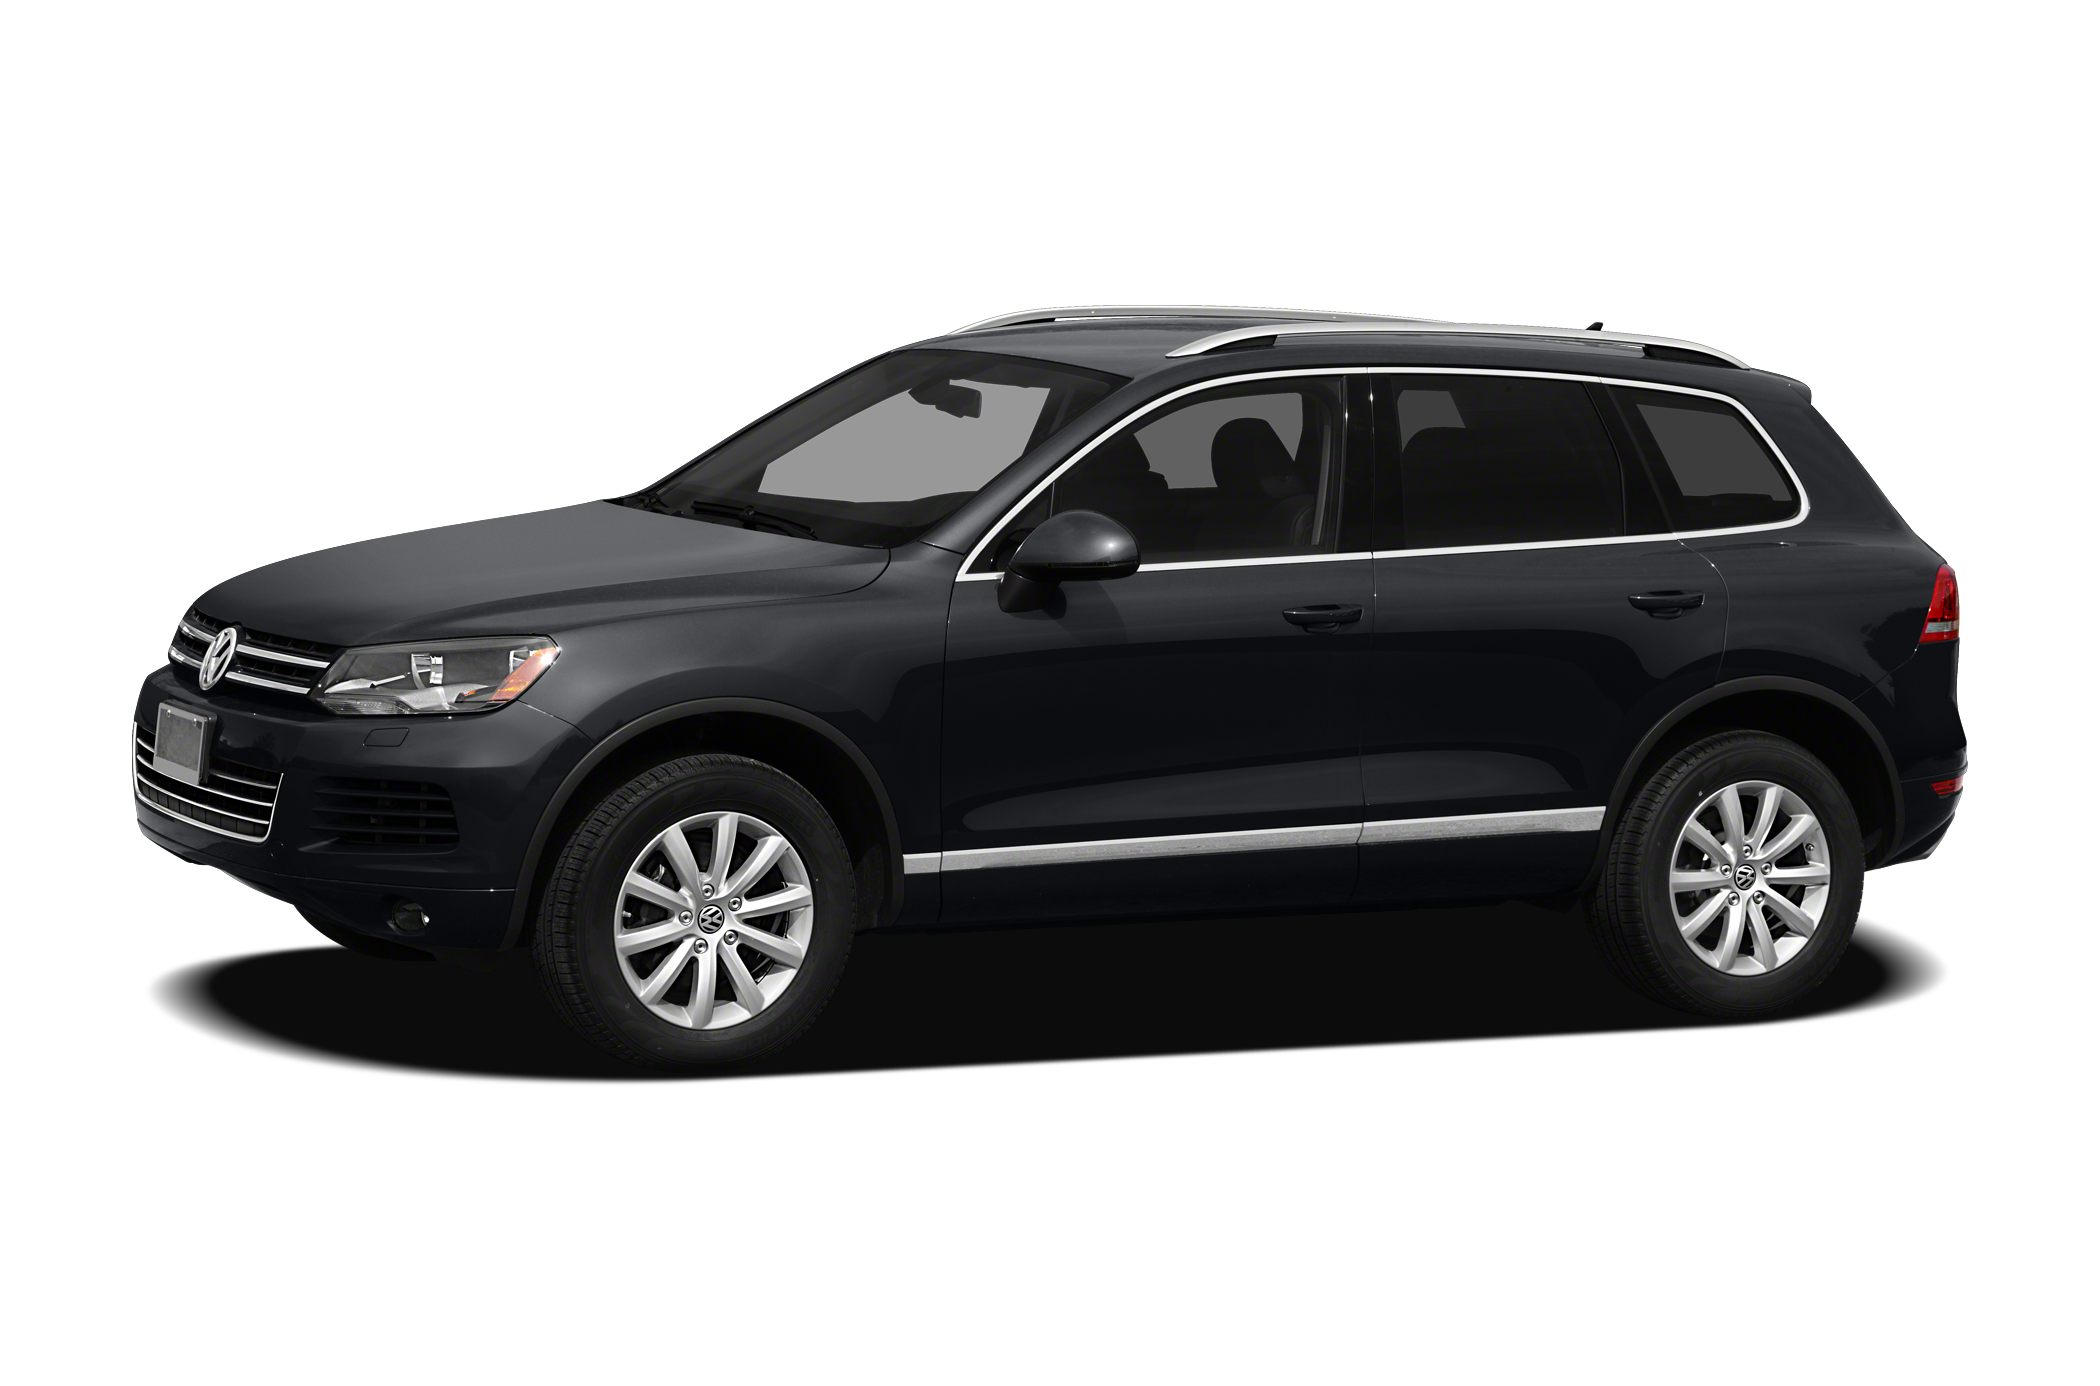 2011 Volkswagen Touareg Sport Take a LOOK at this Baby its a 2011 VW Touareg Local Trade-in wit